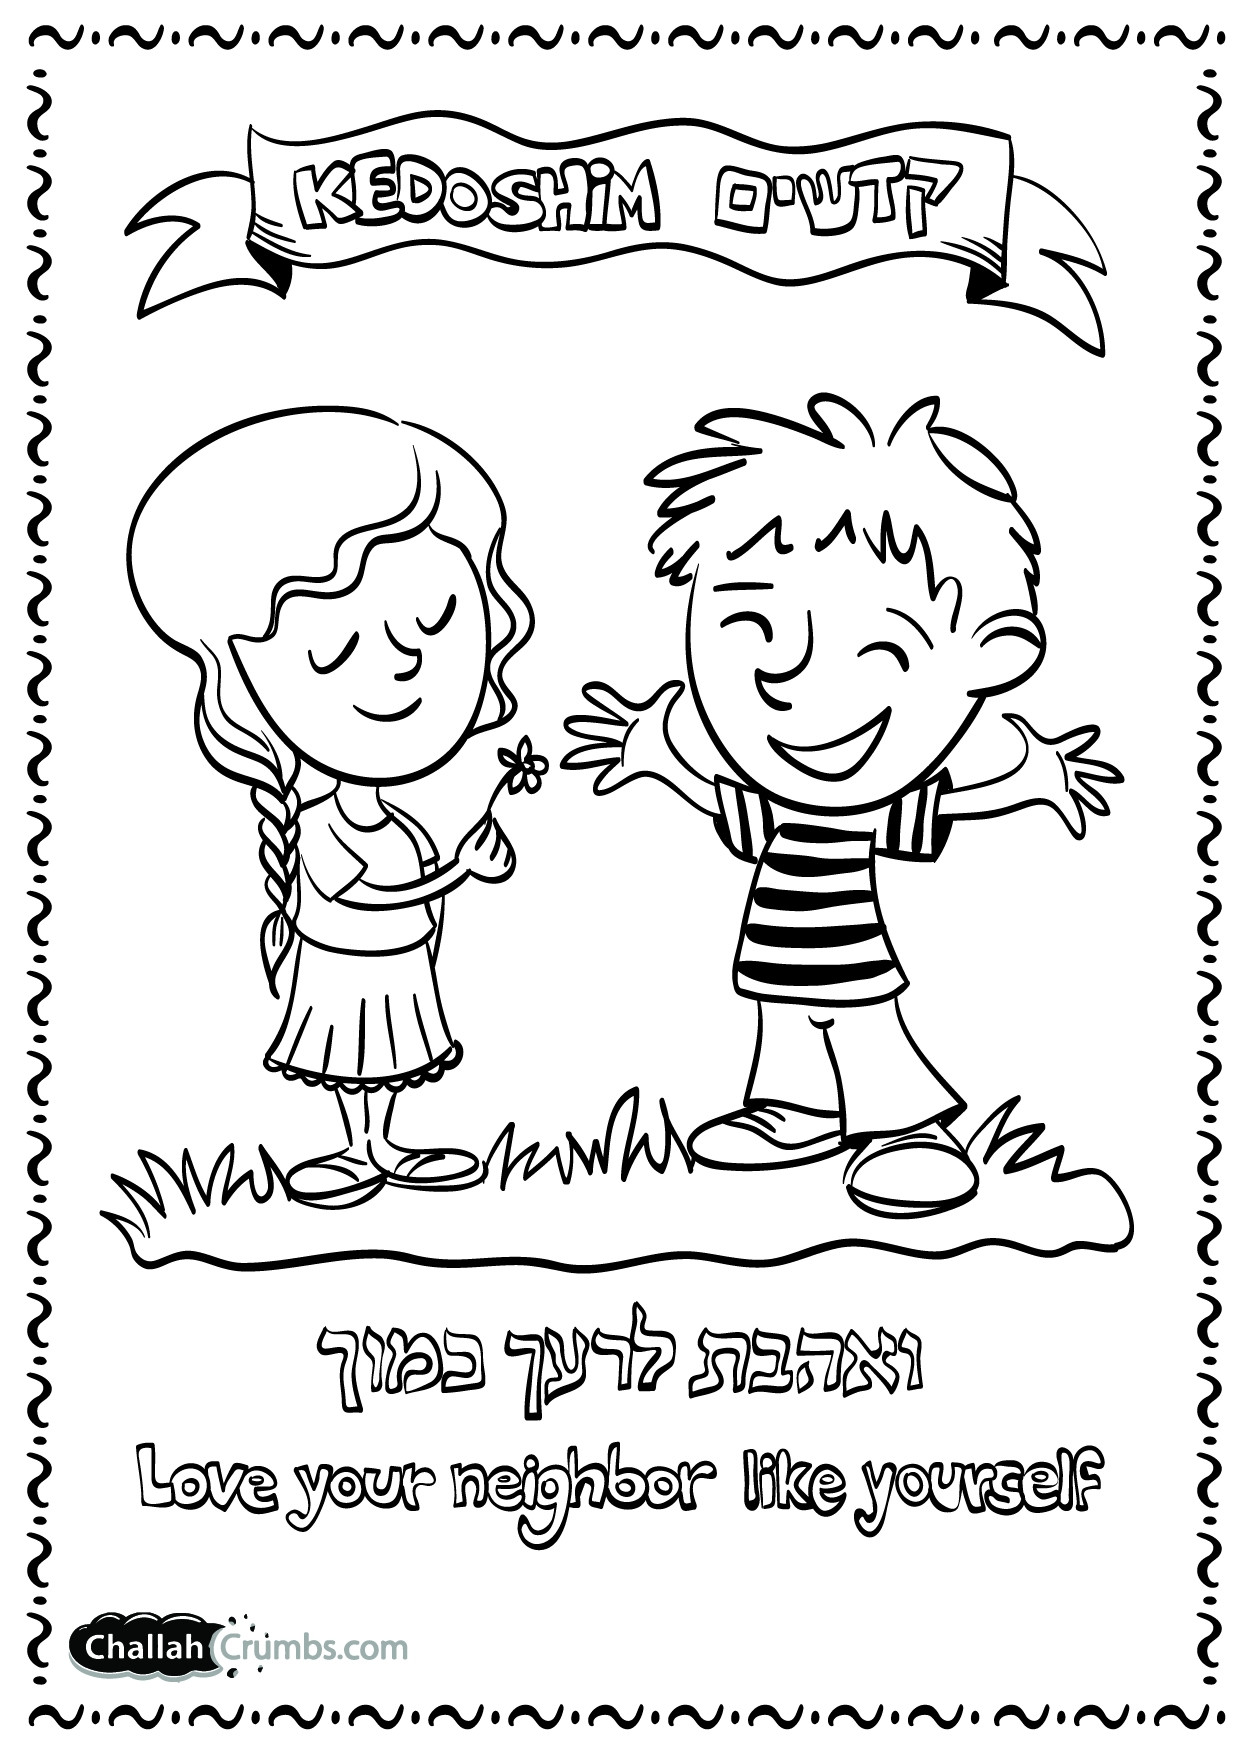 Rosh Hashanah Coloring Pages  Apples and Honey Challah Crumbs Printable Free Coloring